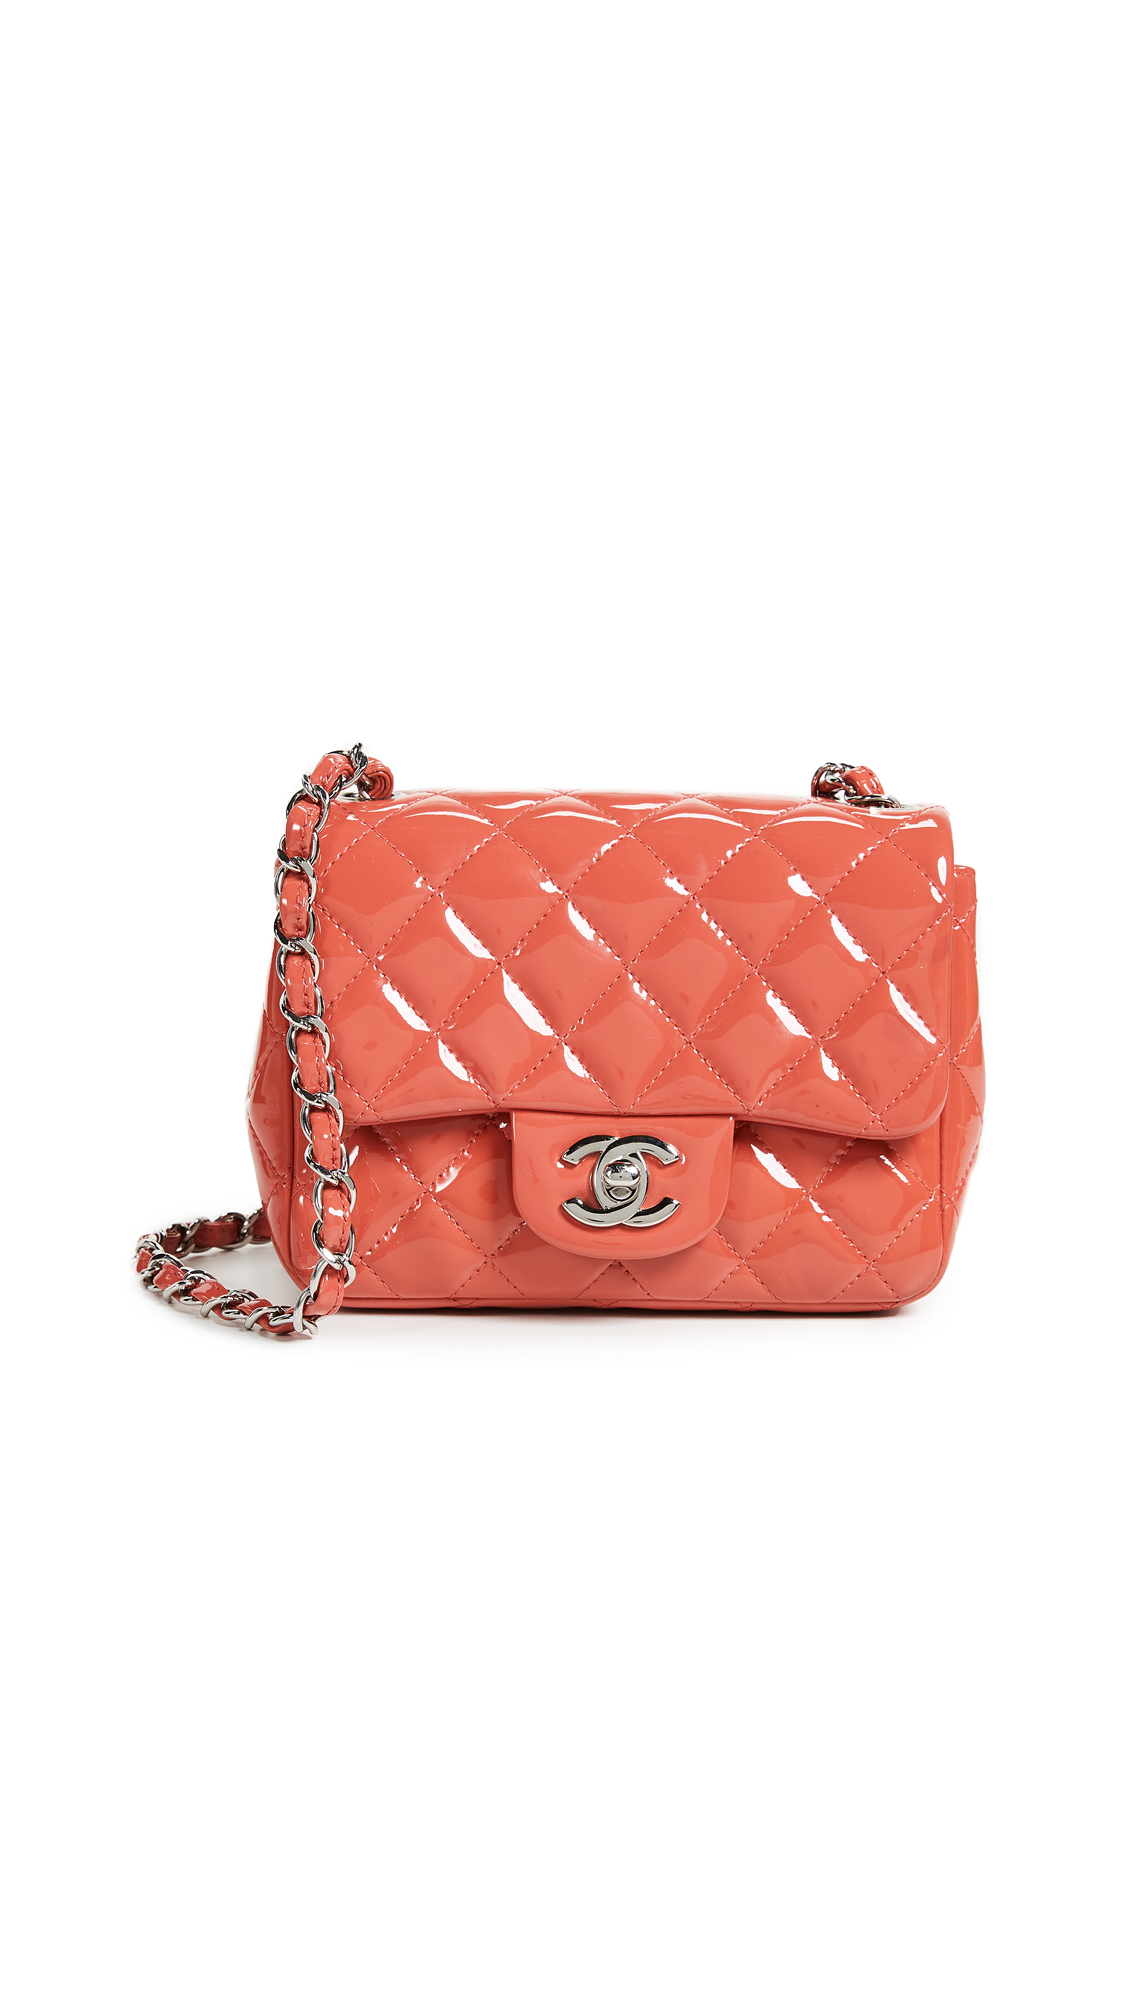 a3605e697890 What Goes Around Comes Around Chanel Patent Mini Flap Bag | SHOPBOP